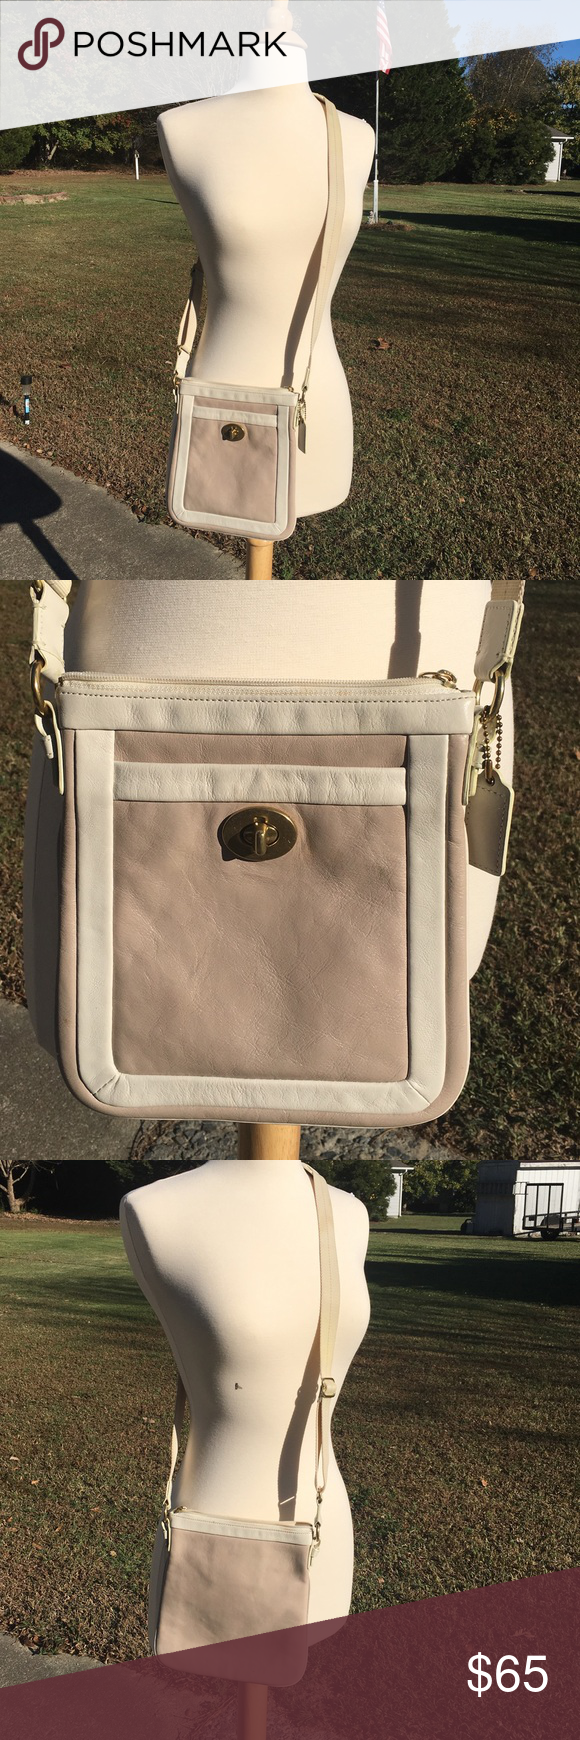 Vintage COACH Tan and White Crossbody Bag Rare! Vintage COACH Two-tone white and tan leather small cross body bag. So cute and hard to find! Great vintage condition. A few light spots on the strap I haven't tried to clean. What a treasure! Coach Bags Crossbody Bags